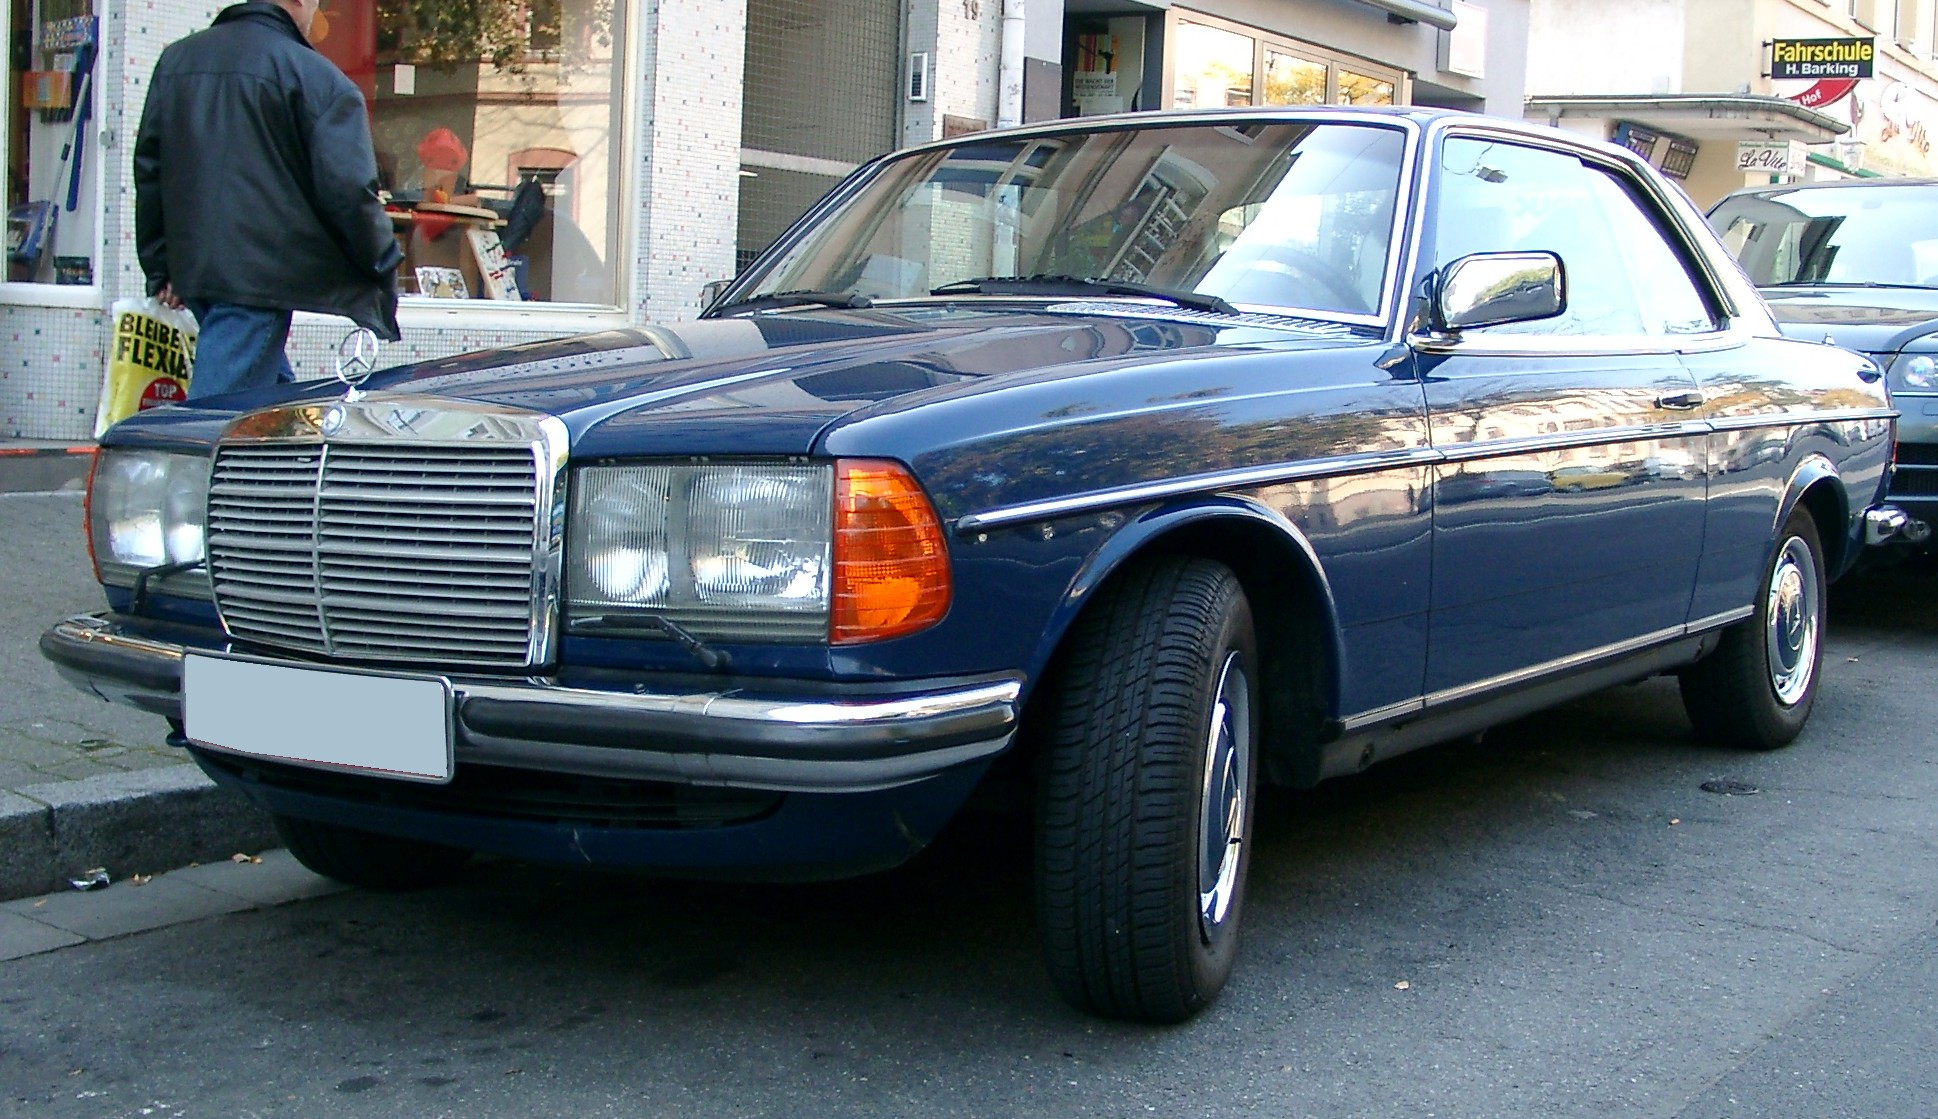 File:Mercedes W123 Coupe front 20071009 jpg - Wikimedia Commons